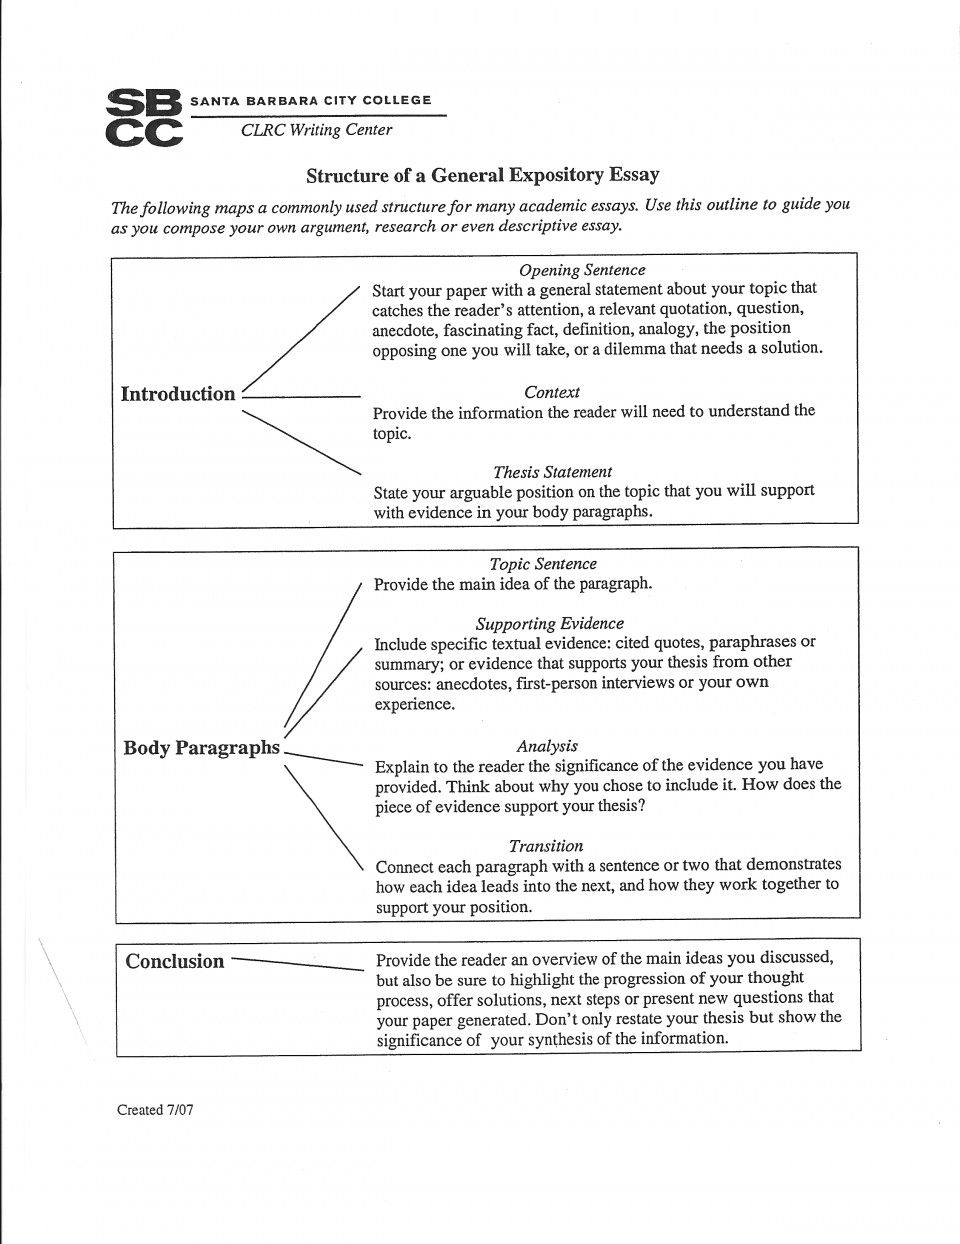 006 Informative Essay Dreaded Outline Template Pdf Topics For 5th Grade Rubric Fsa 960